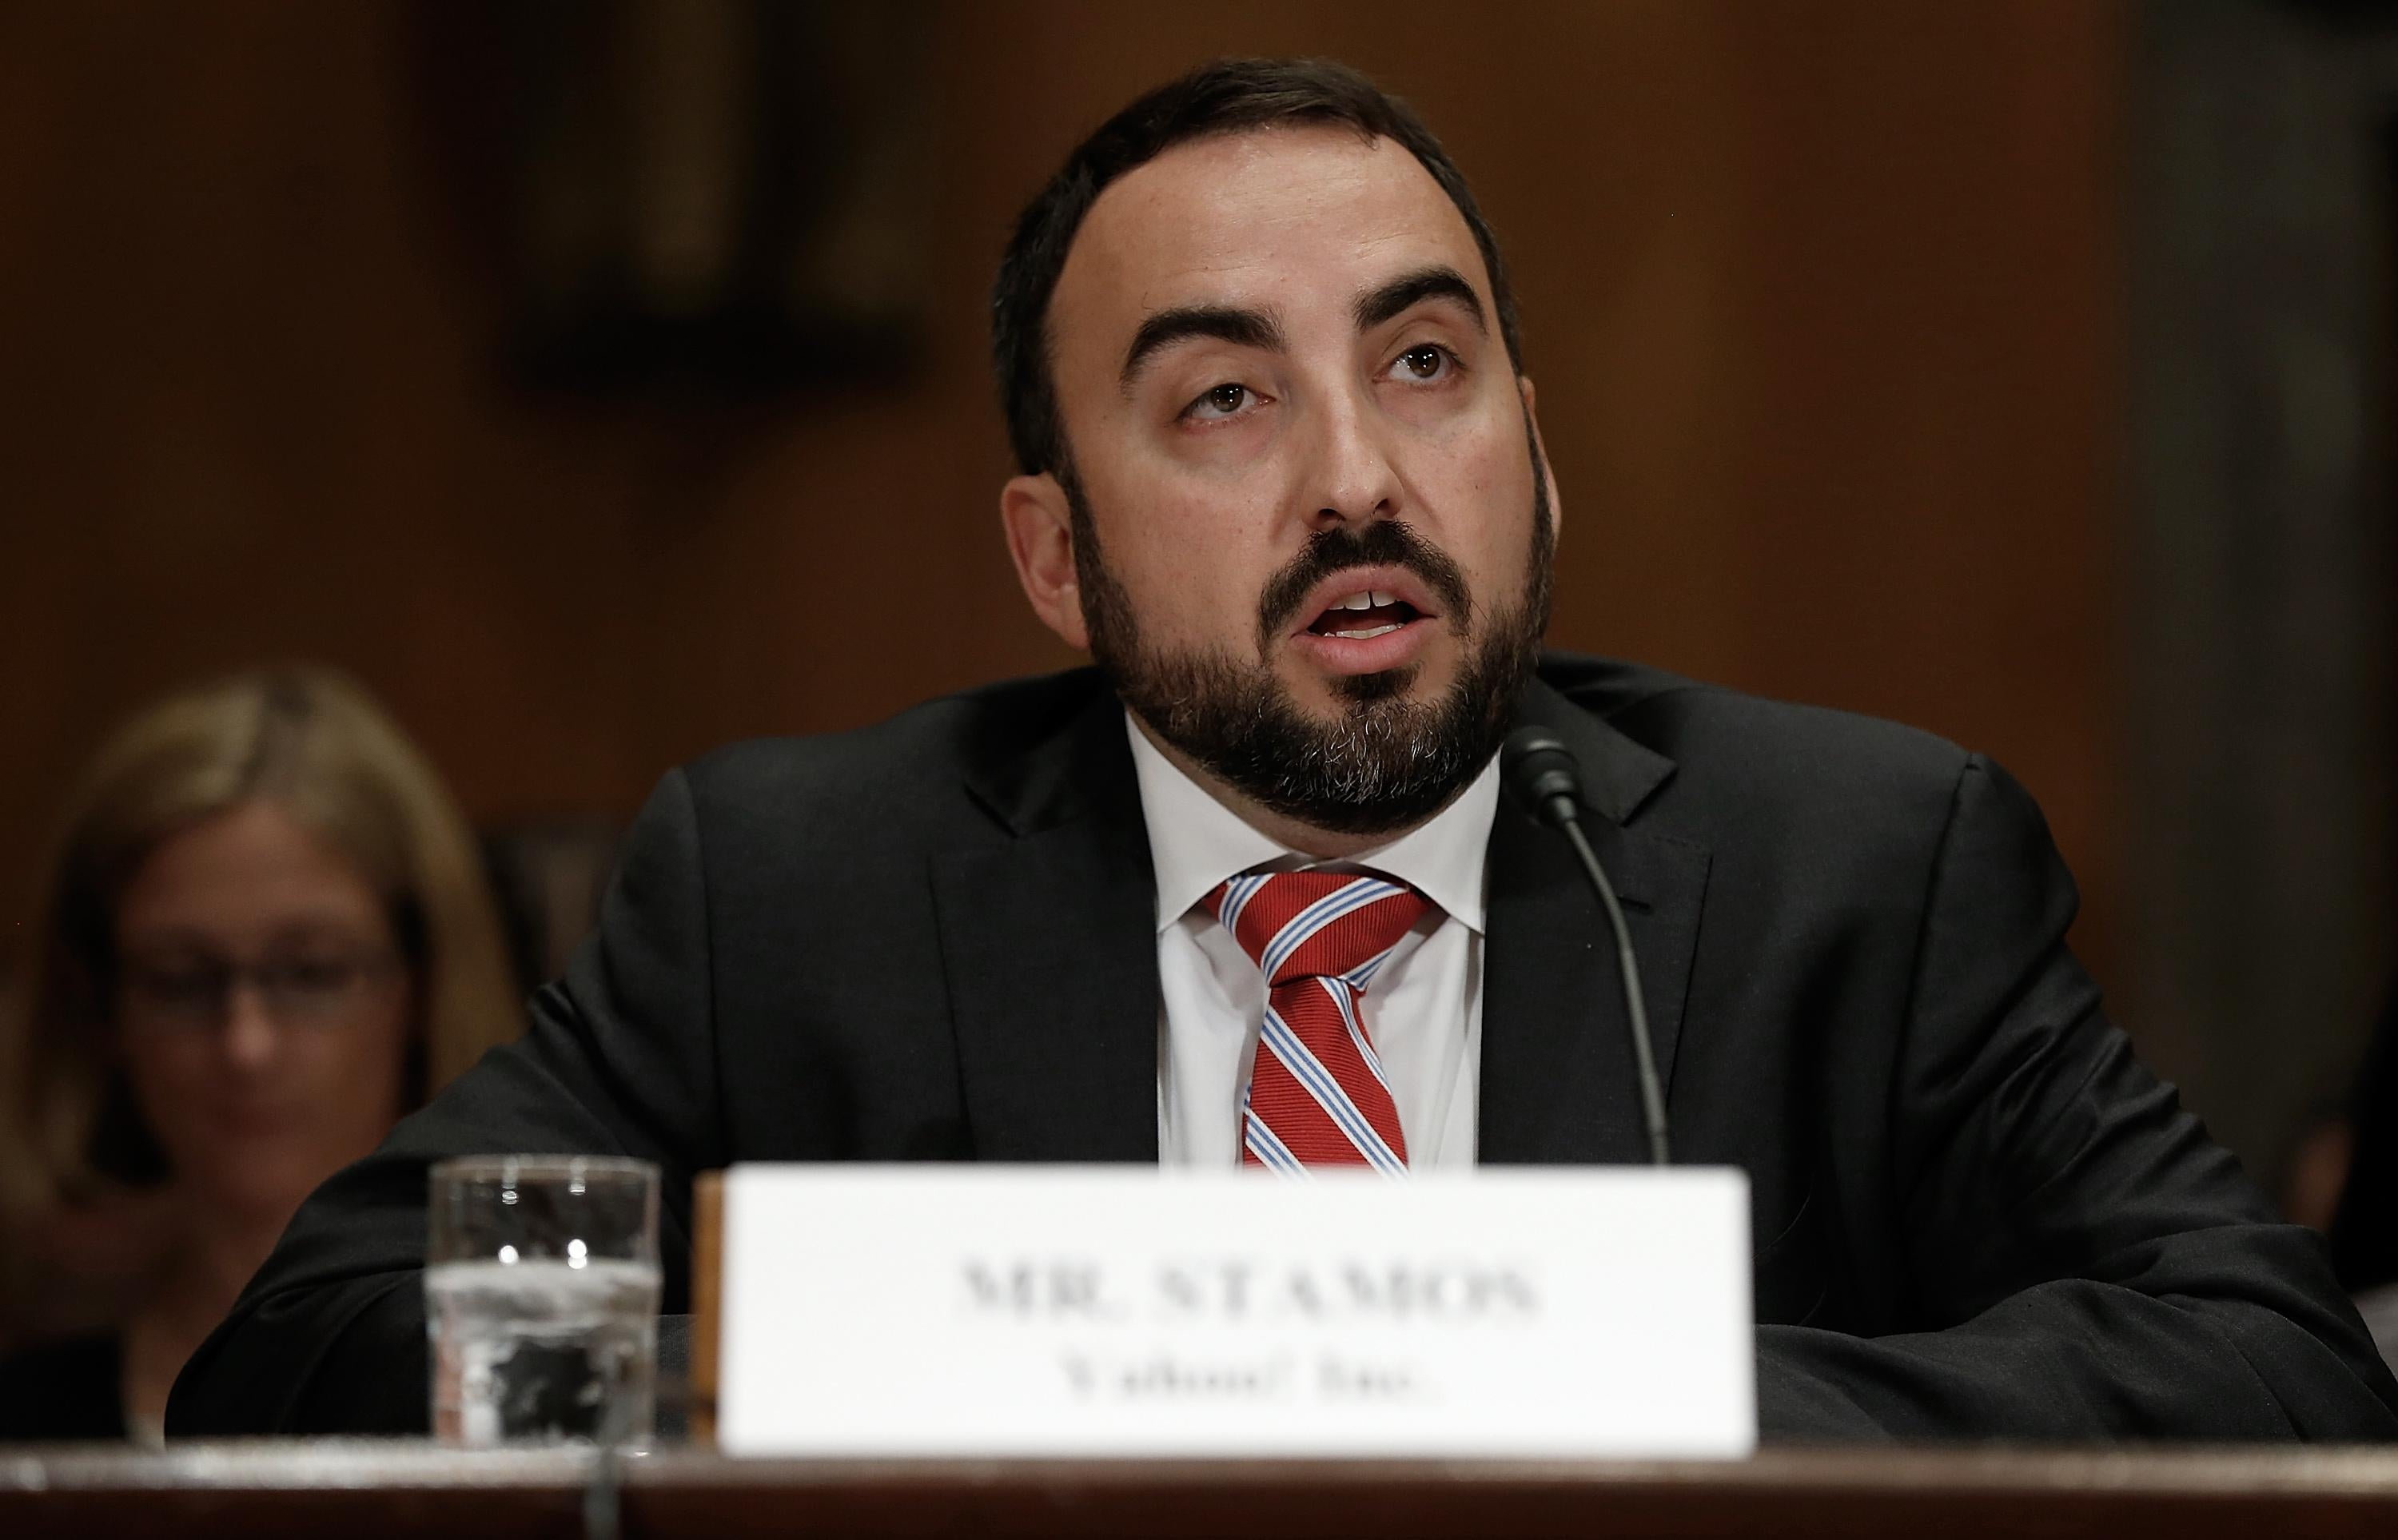 Facebook's chief security officer, Alex Stamos—shown here testifying before the Senate in 2014 in his previous role at Yahoo—is spearheading the company's effort to crack down on fake news, propaganda, and Russian election interference.